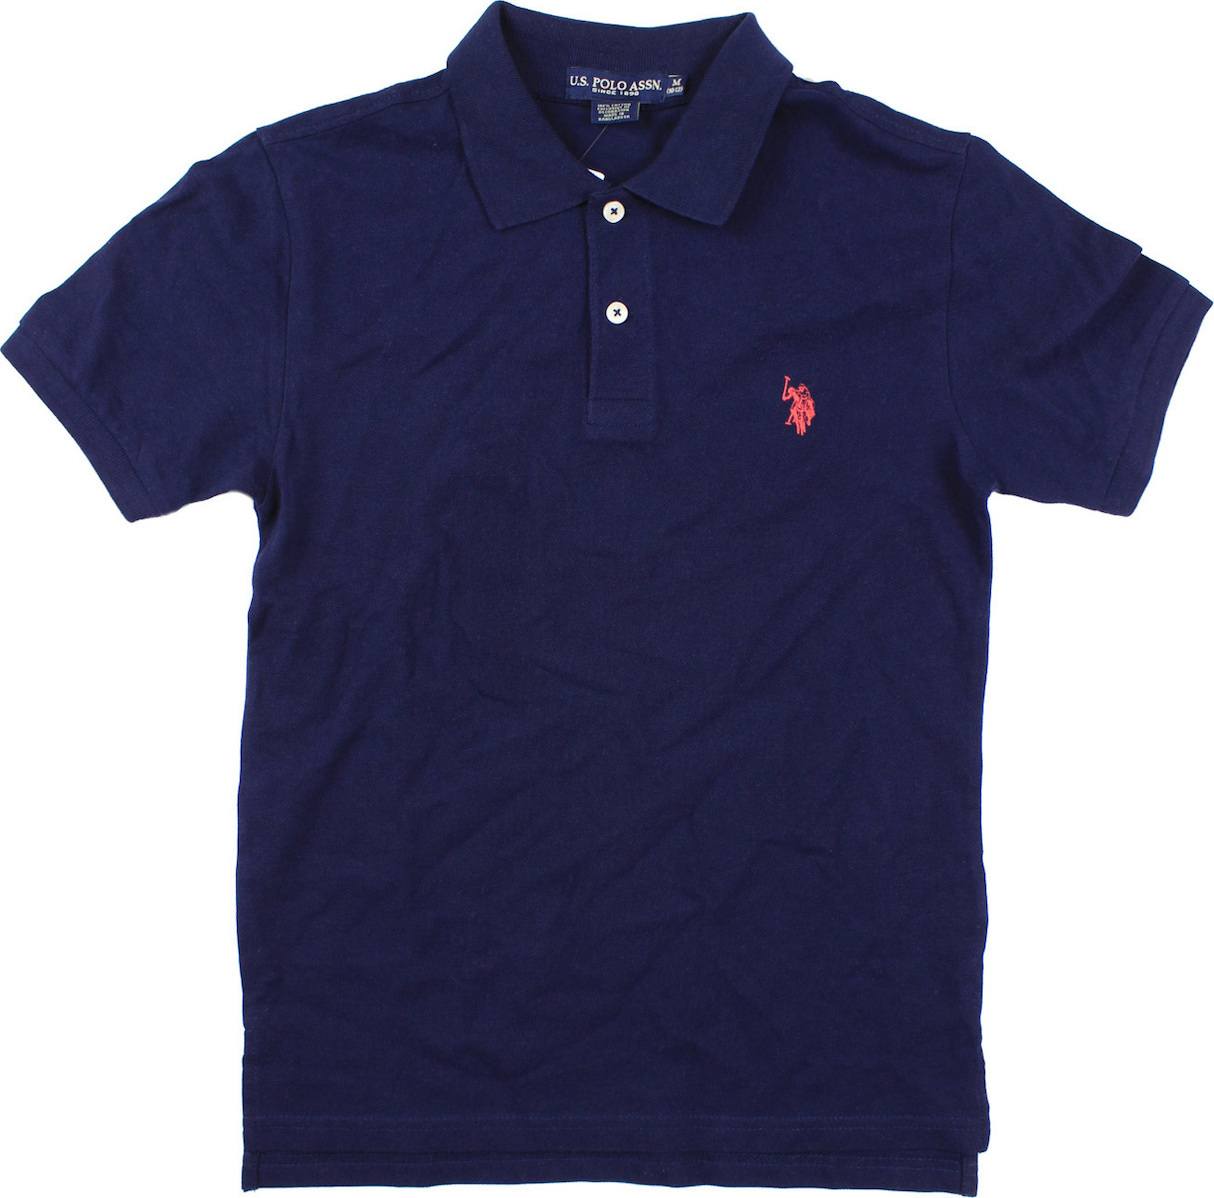 5beef9578b4 US POLO ASSN Polo T-shirt παιδικό 126650V1 CLNV - Skroutz.gr